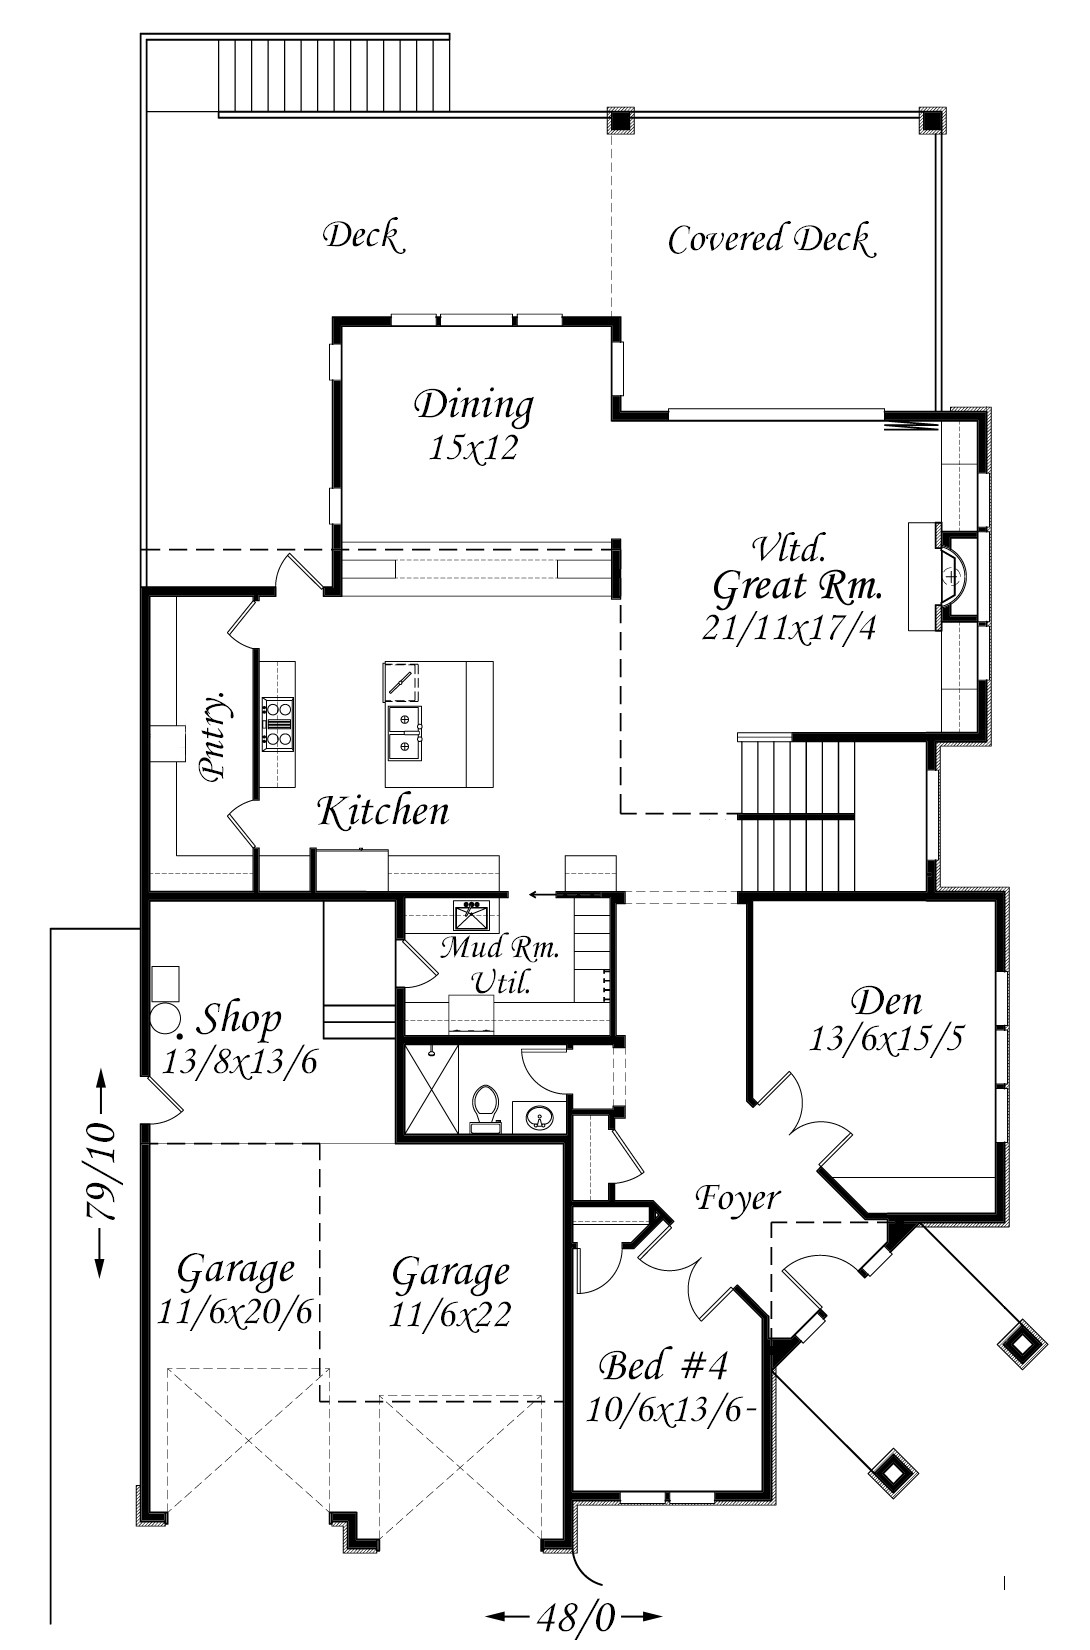 Smith rock house plan old world european style house plans for Old world house plans